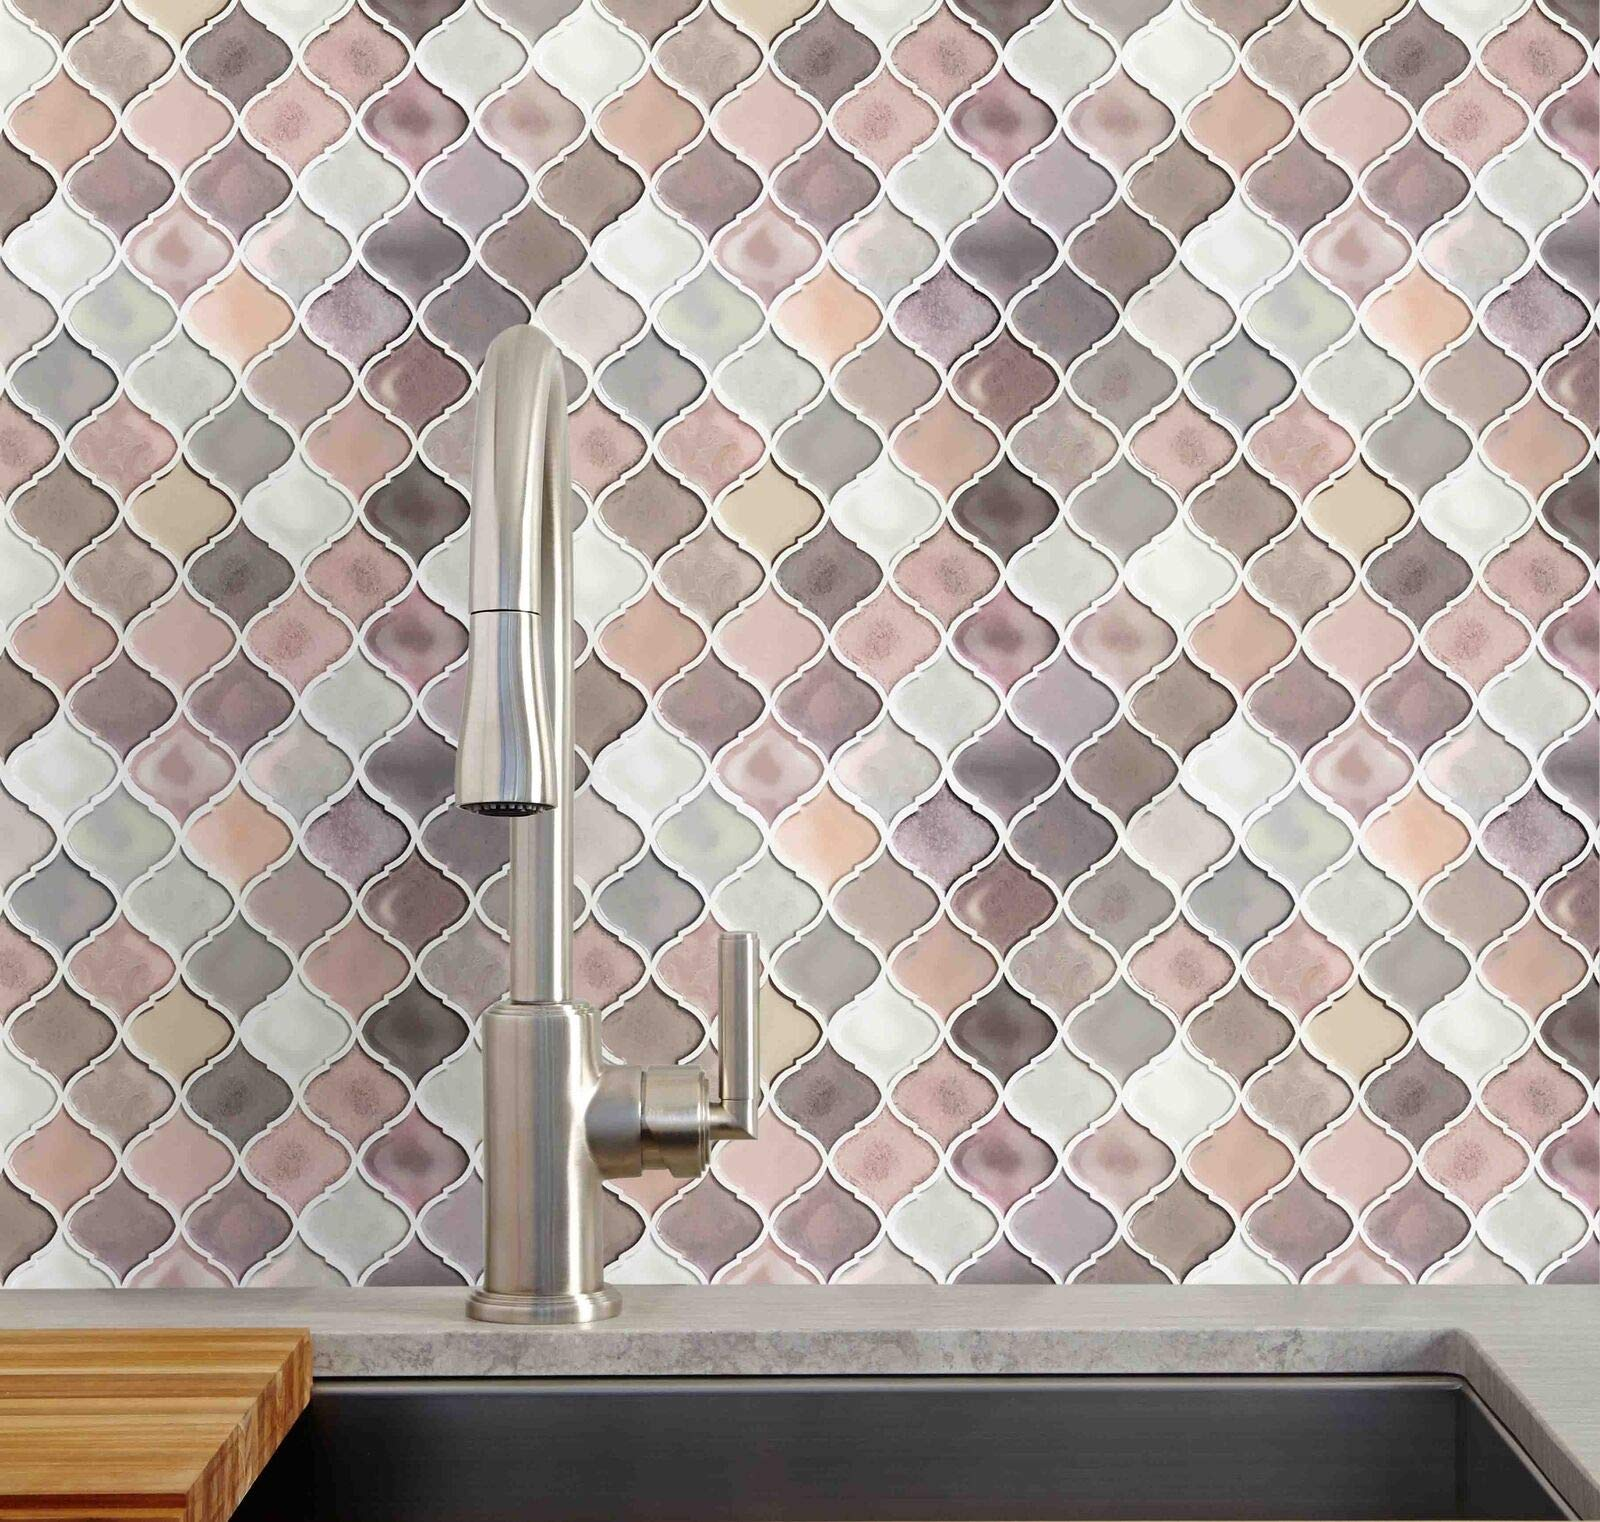 10 Pack Self Adhesive Wall Tile Arabesque Pink Peel and Stick Tile Backsplash by MB-THISTAR